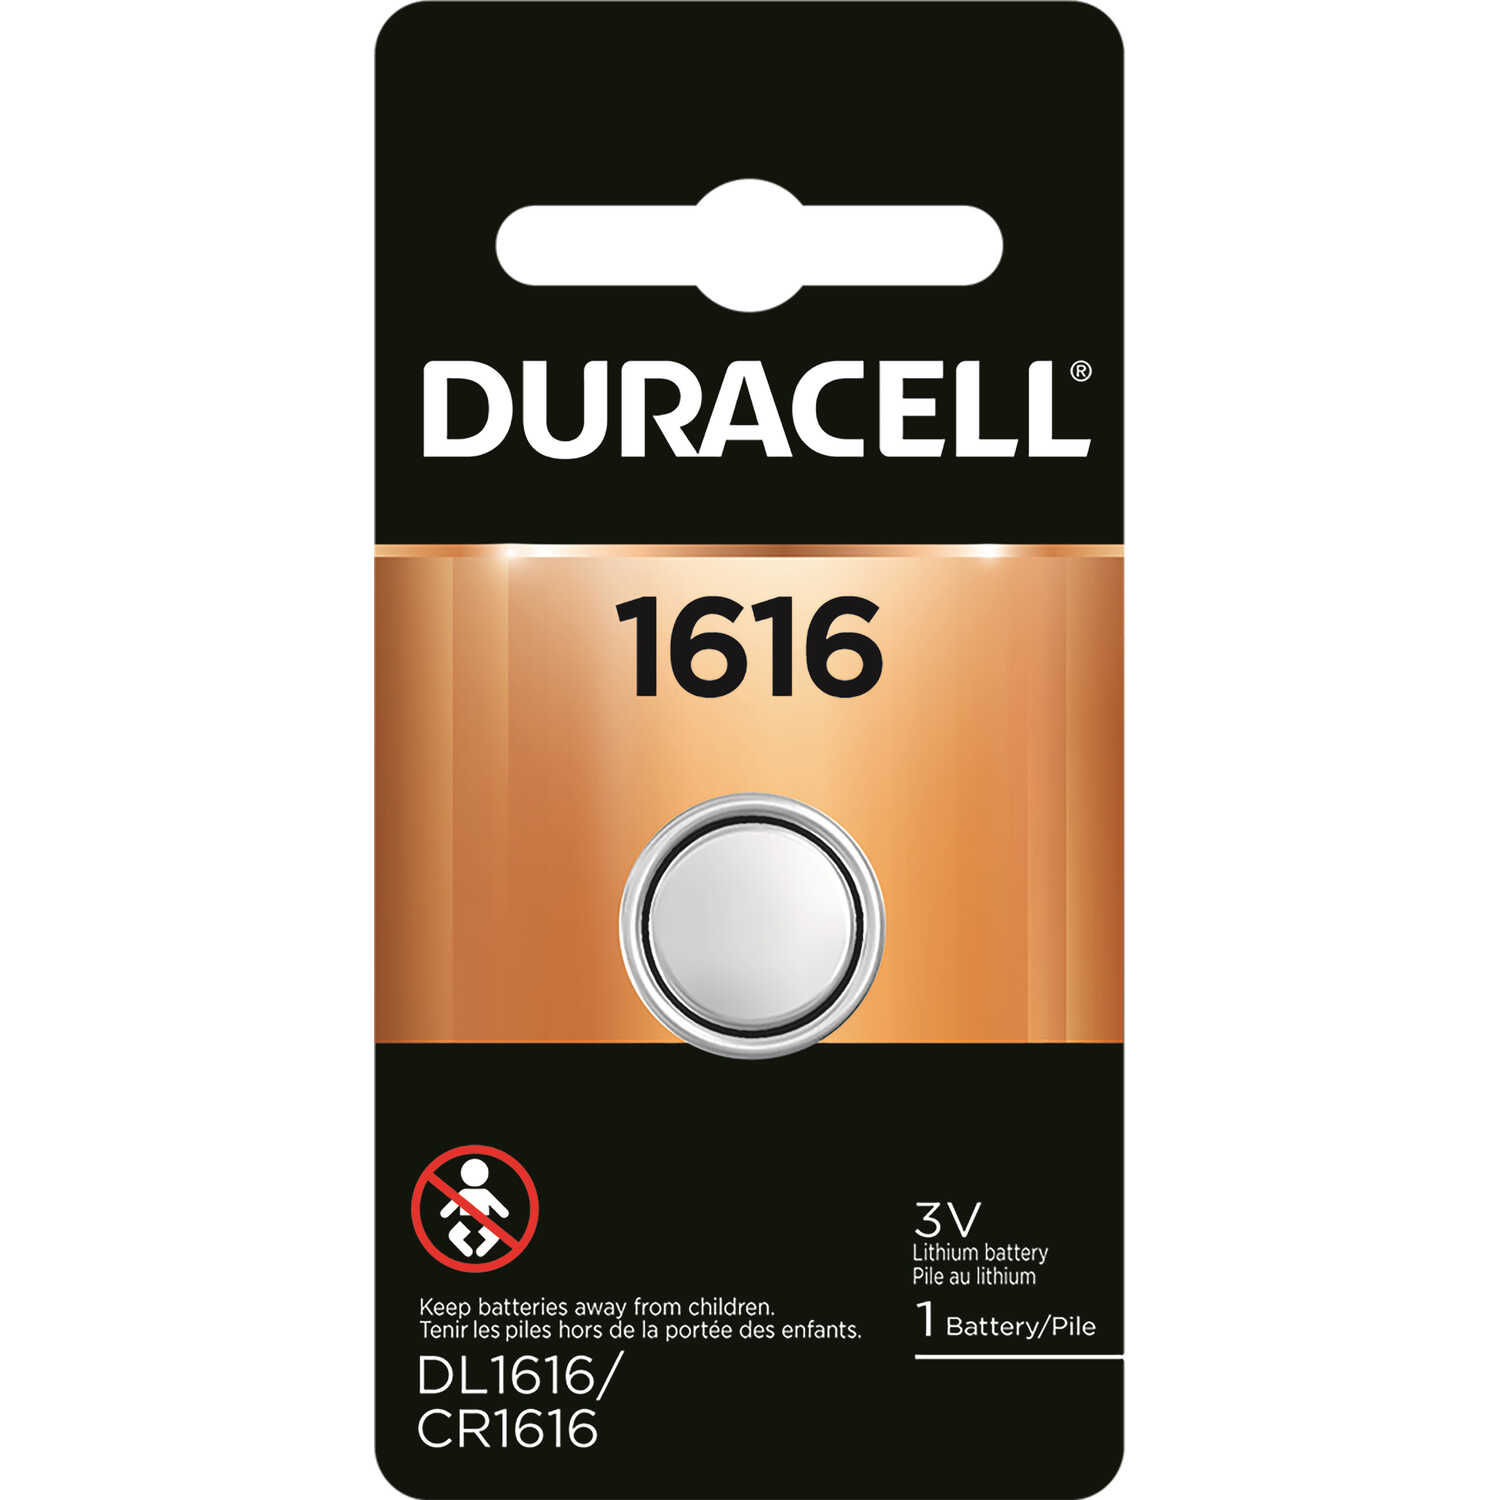 Duracell Lithium Medical Battery 3 volt 1 pk 1616